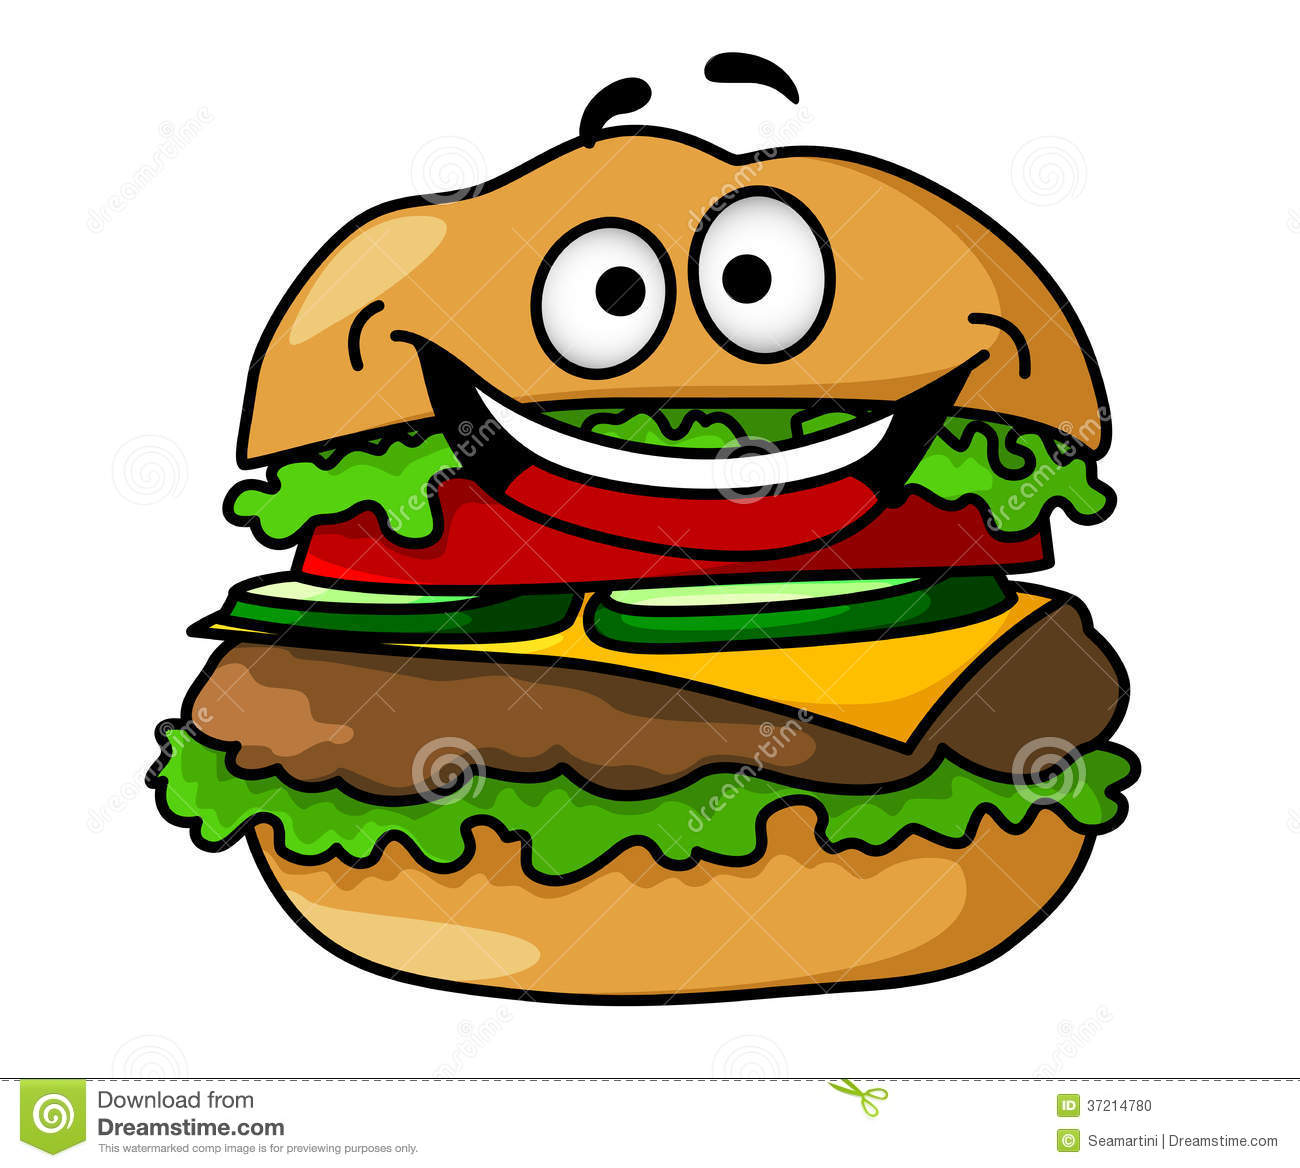 Hamburger clipart funny Hamburger WallpaperSafari Pictures Cartoon Hamburger